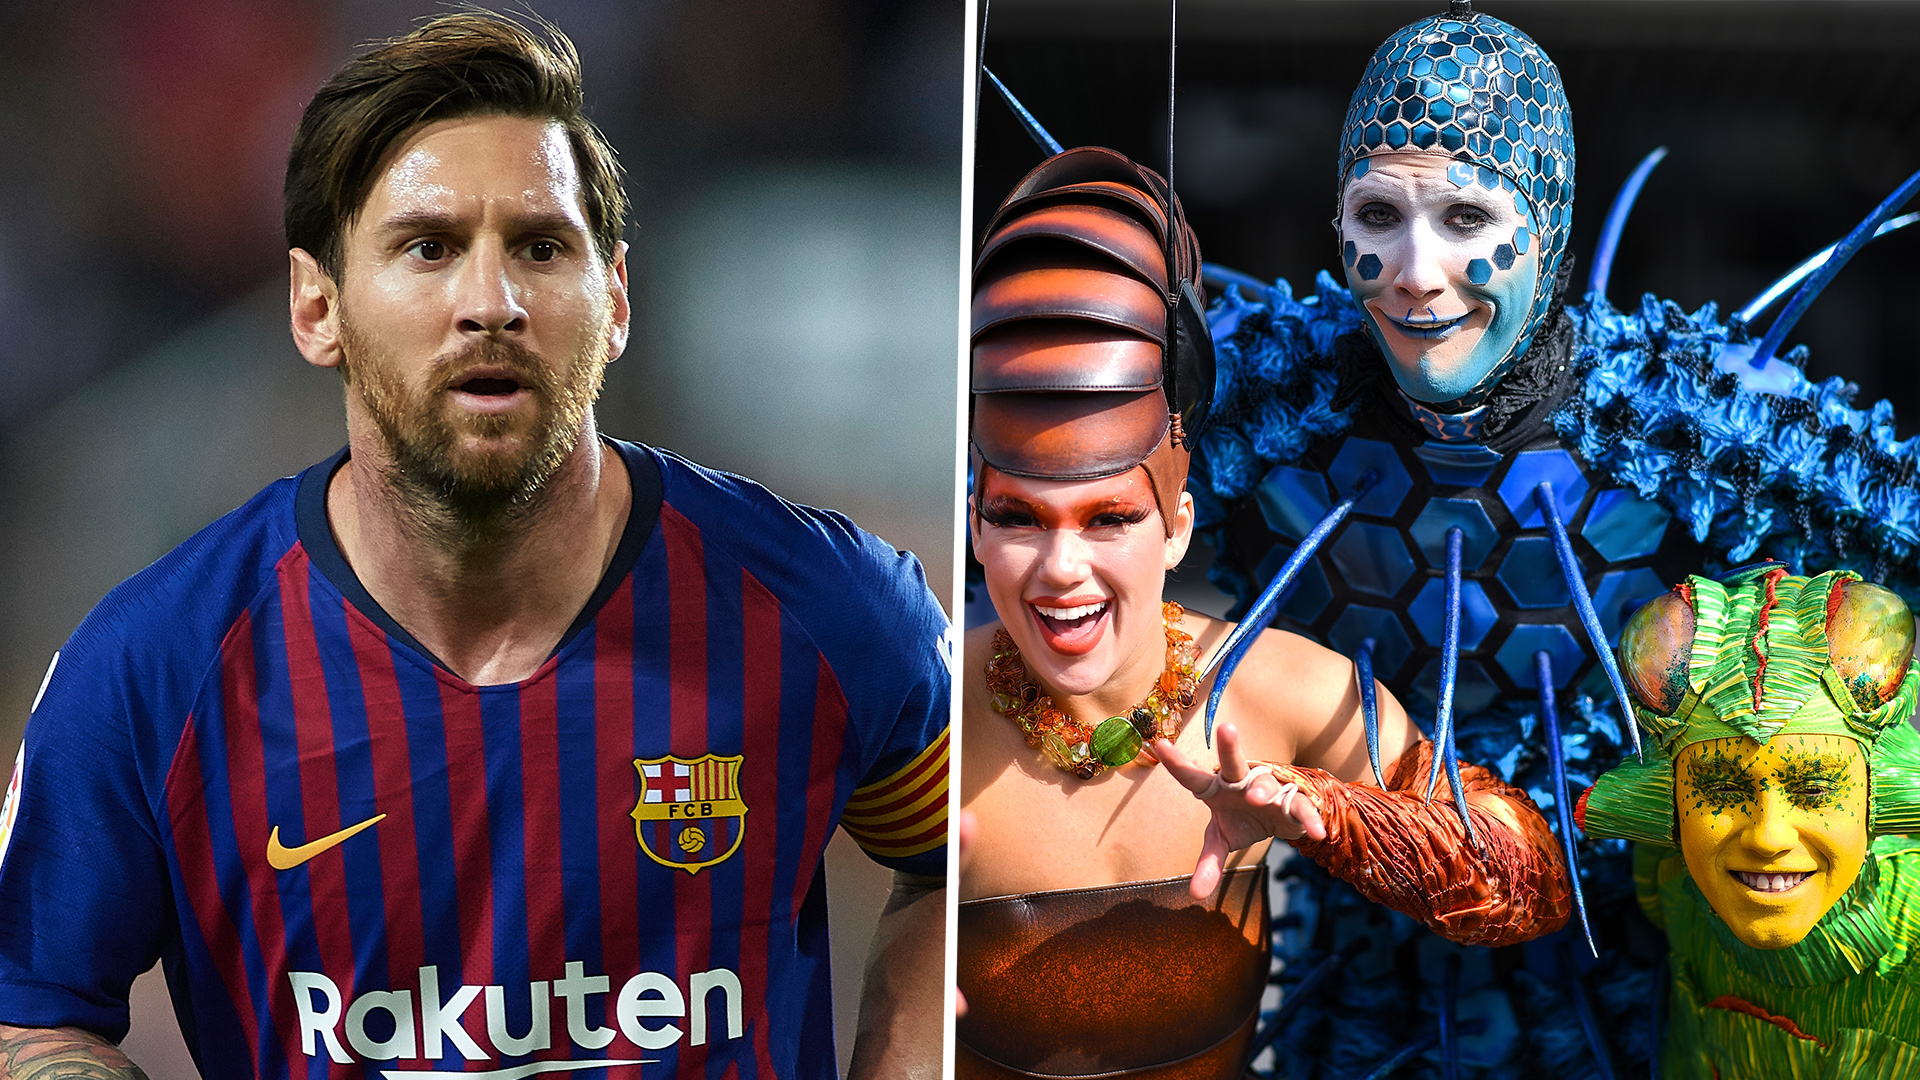 After Beatles and Michael Jackson, Cirque turns to soccer star Lionel Messi